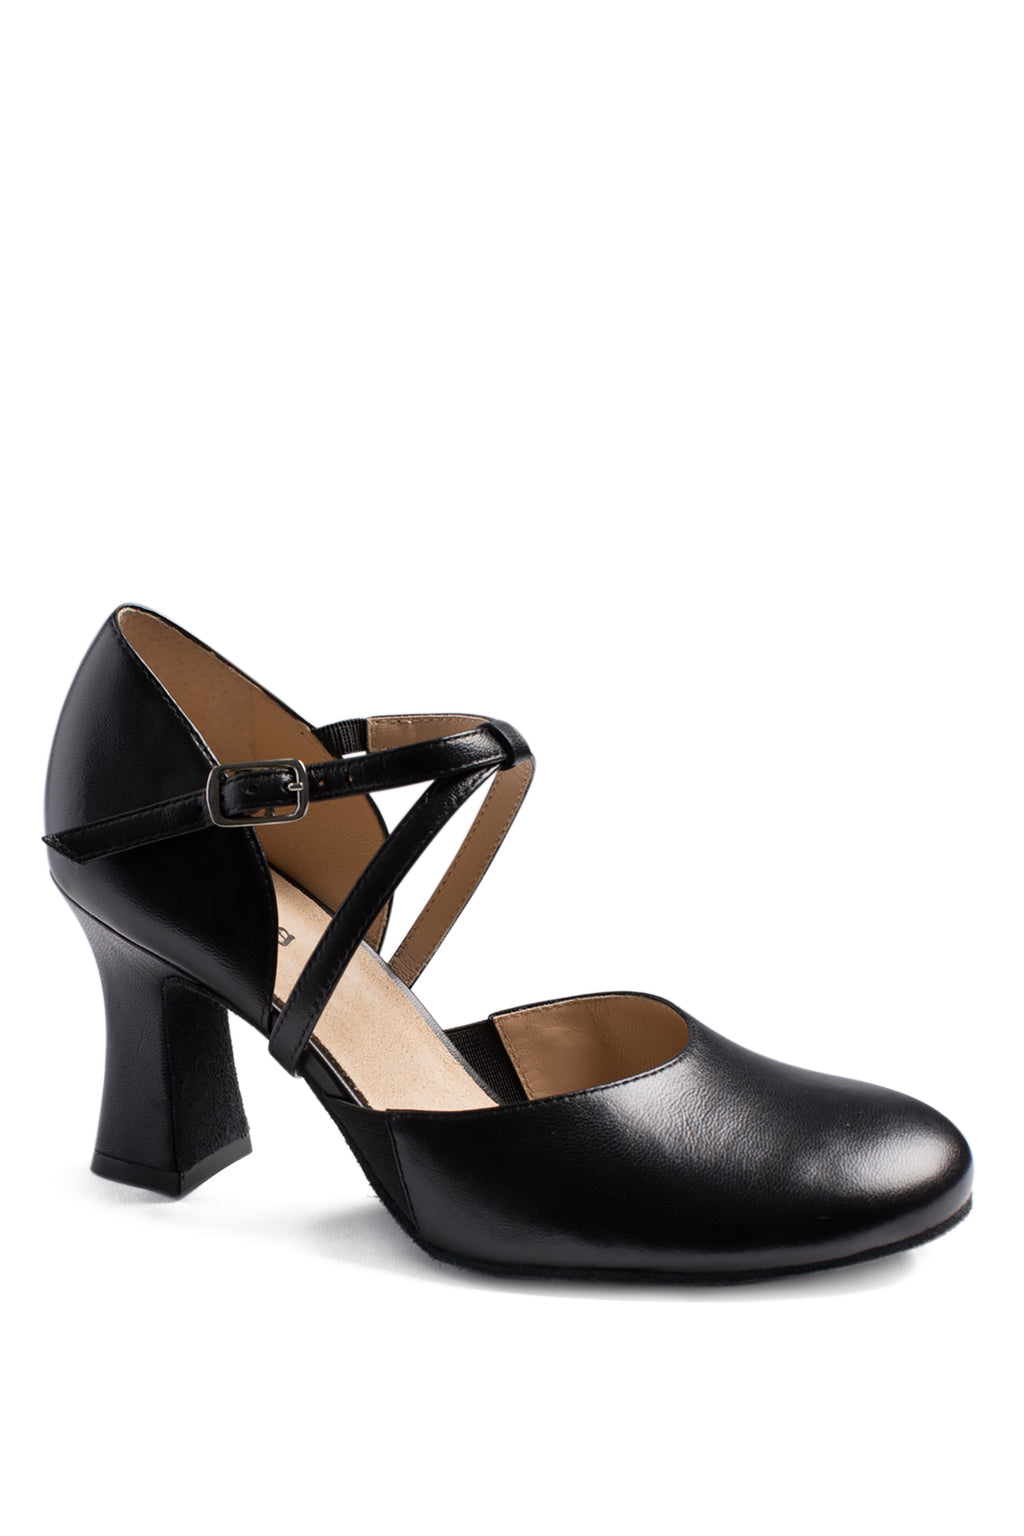 "So Danca Leather Character Shoe with 2.5"" Heel - SD142"